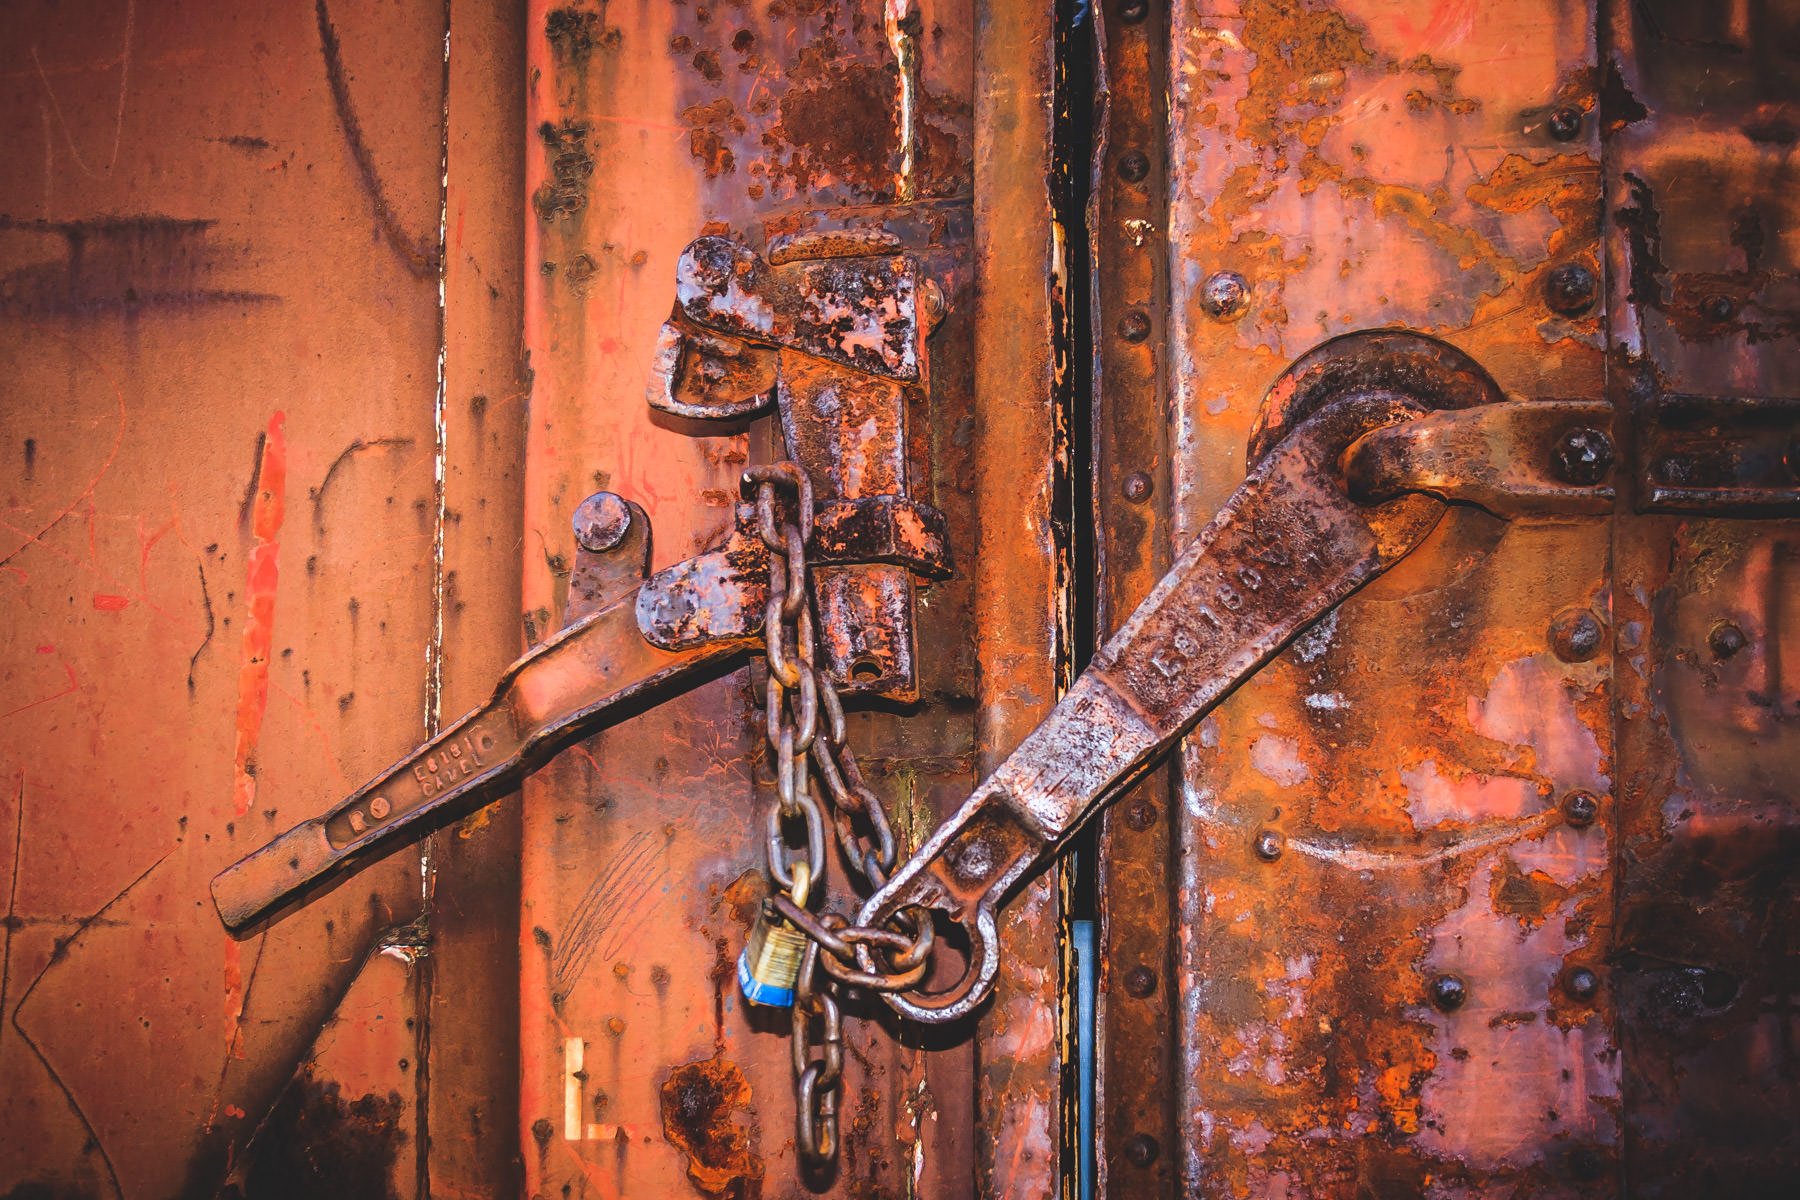 A latch on an old railroad car found in Grapevine, Texas.